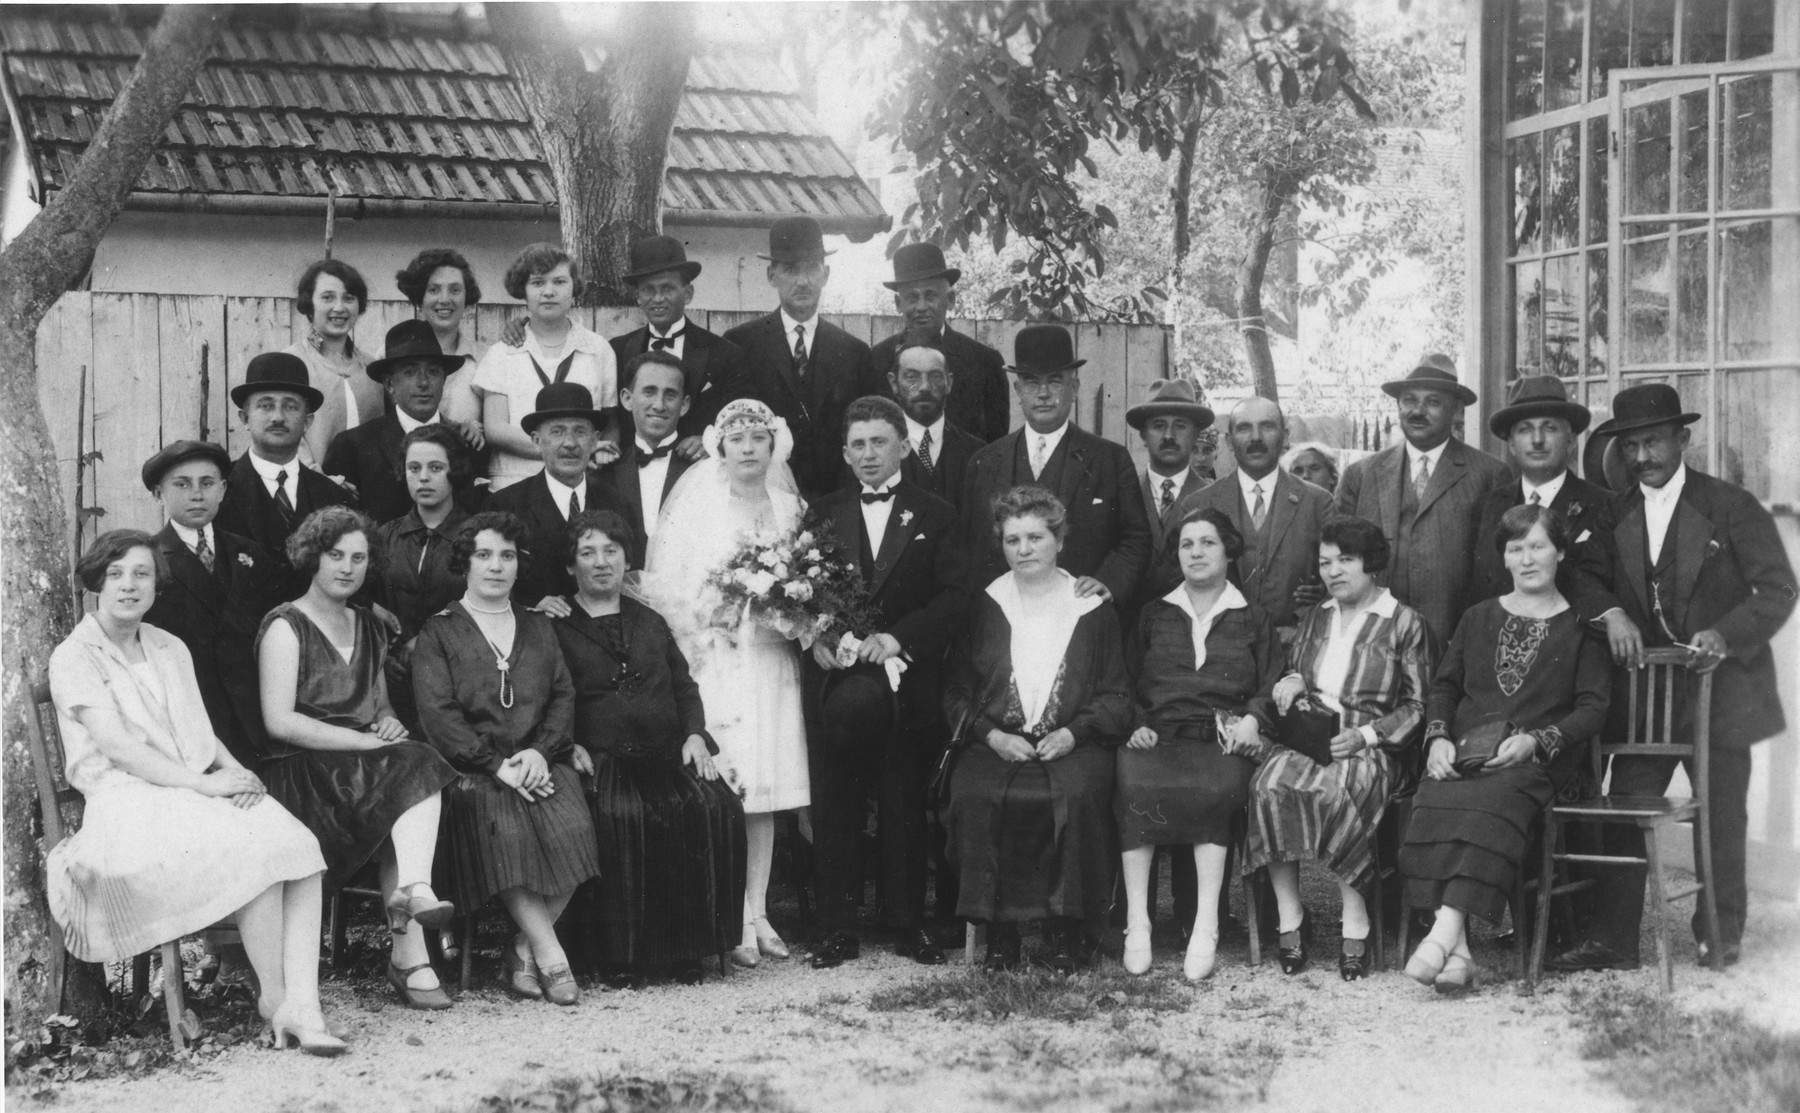 Portrait of an extended Jewish family at a wedding in Galanta, Slovakia.  The bride and groom are Ilona Pressburger and Natan Beck.  Pictured from left to right.  Front row: Olga Beck, Margit Beck, Etelka Beck, Cecilia Reiss Beck, Ilona Pressburger, Natan Beck, Fani Lowinger Pressburger and others unknown.  Second row: Irvin Beck, Michael Binetter, unknown, Jakub Beck, Bela Beck, unknown, Max Mordechai, others unknown.  Top row: Manci Beck, Frederika Beck, Elisheva Pressburger and others unknown.